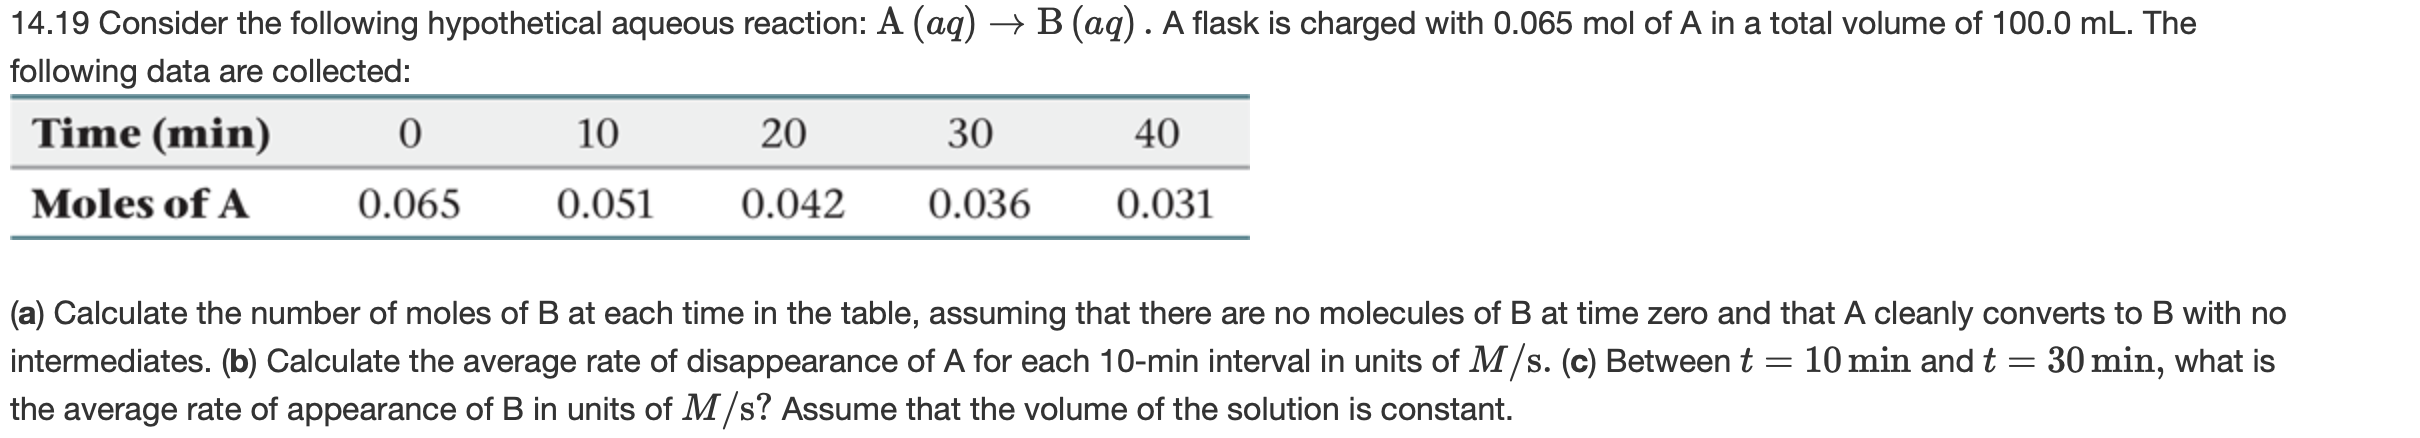 → B (aq). A flask is charged with 0.065 mol of A in a total volume of 100.0 mL. The 14.19 Consider the following hypothetical aqueous reaction: A (aq) following data are collected: Time (min) 10 20 30 40 0.031 Moles of A 0.065 0.051 0.042 0.036 (a) Calculate the number of moles of B at each time in the table, assuming that there are no molecules of B at time zero and that A cleanly converts to B with no intermediates. (b) Calculate the average rate of disappearance of A for each 10-min interval in units of M/s. (c) Between t the average rate of appearance of B in units of M/s? Assume that the volume of the solution is constant. 10 min and t = 30 min, what is